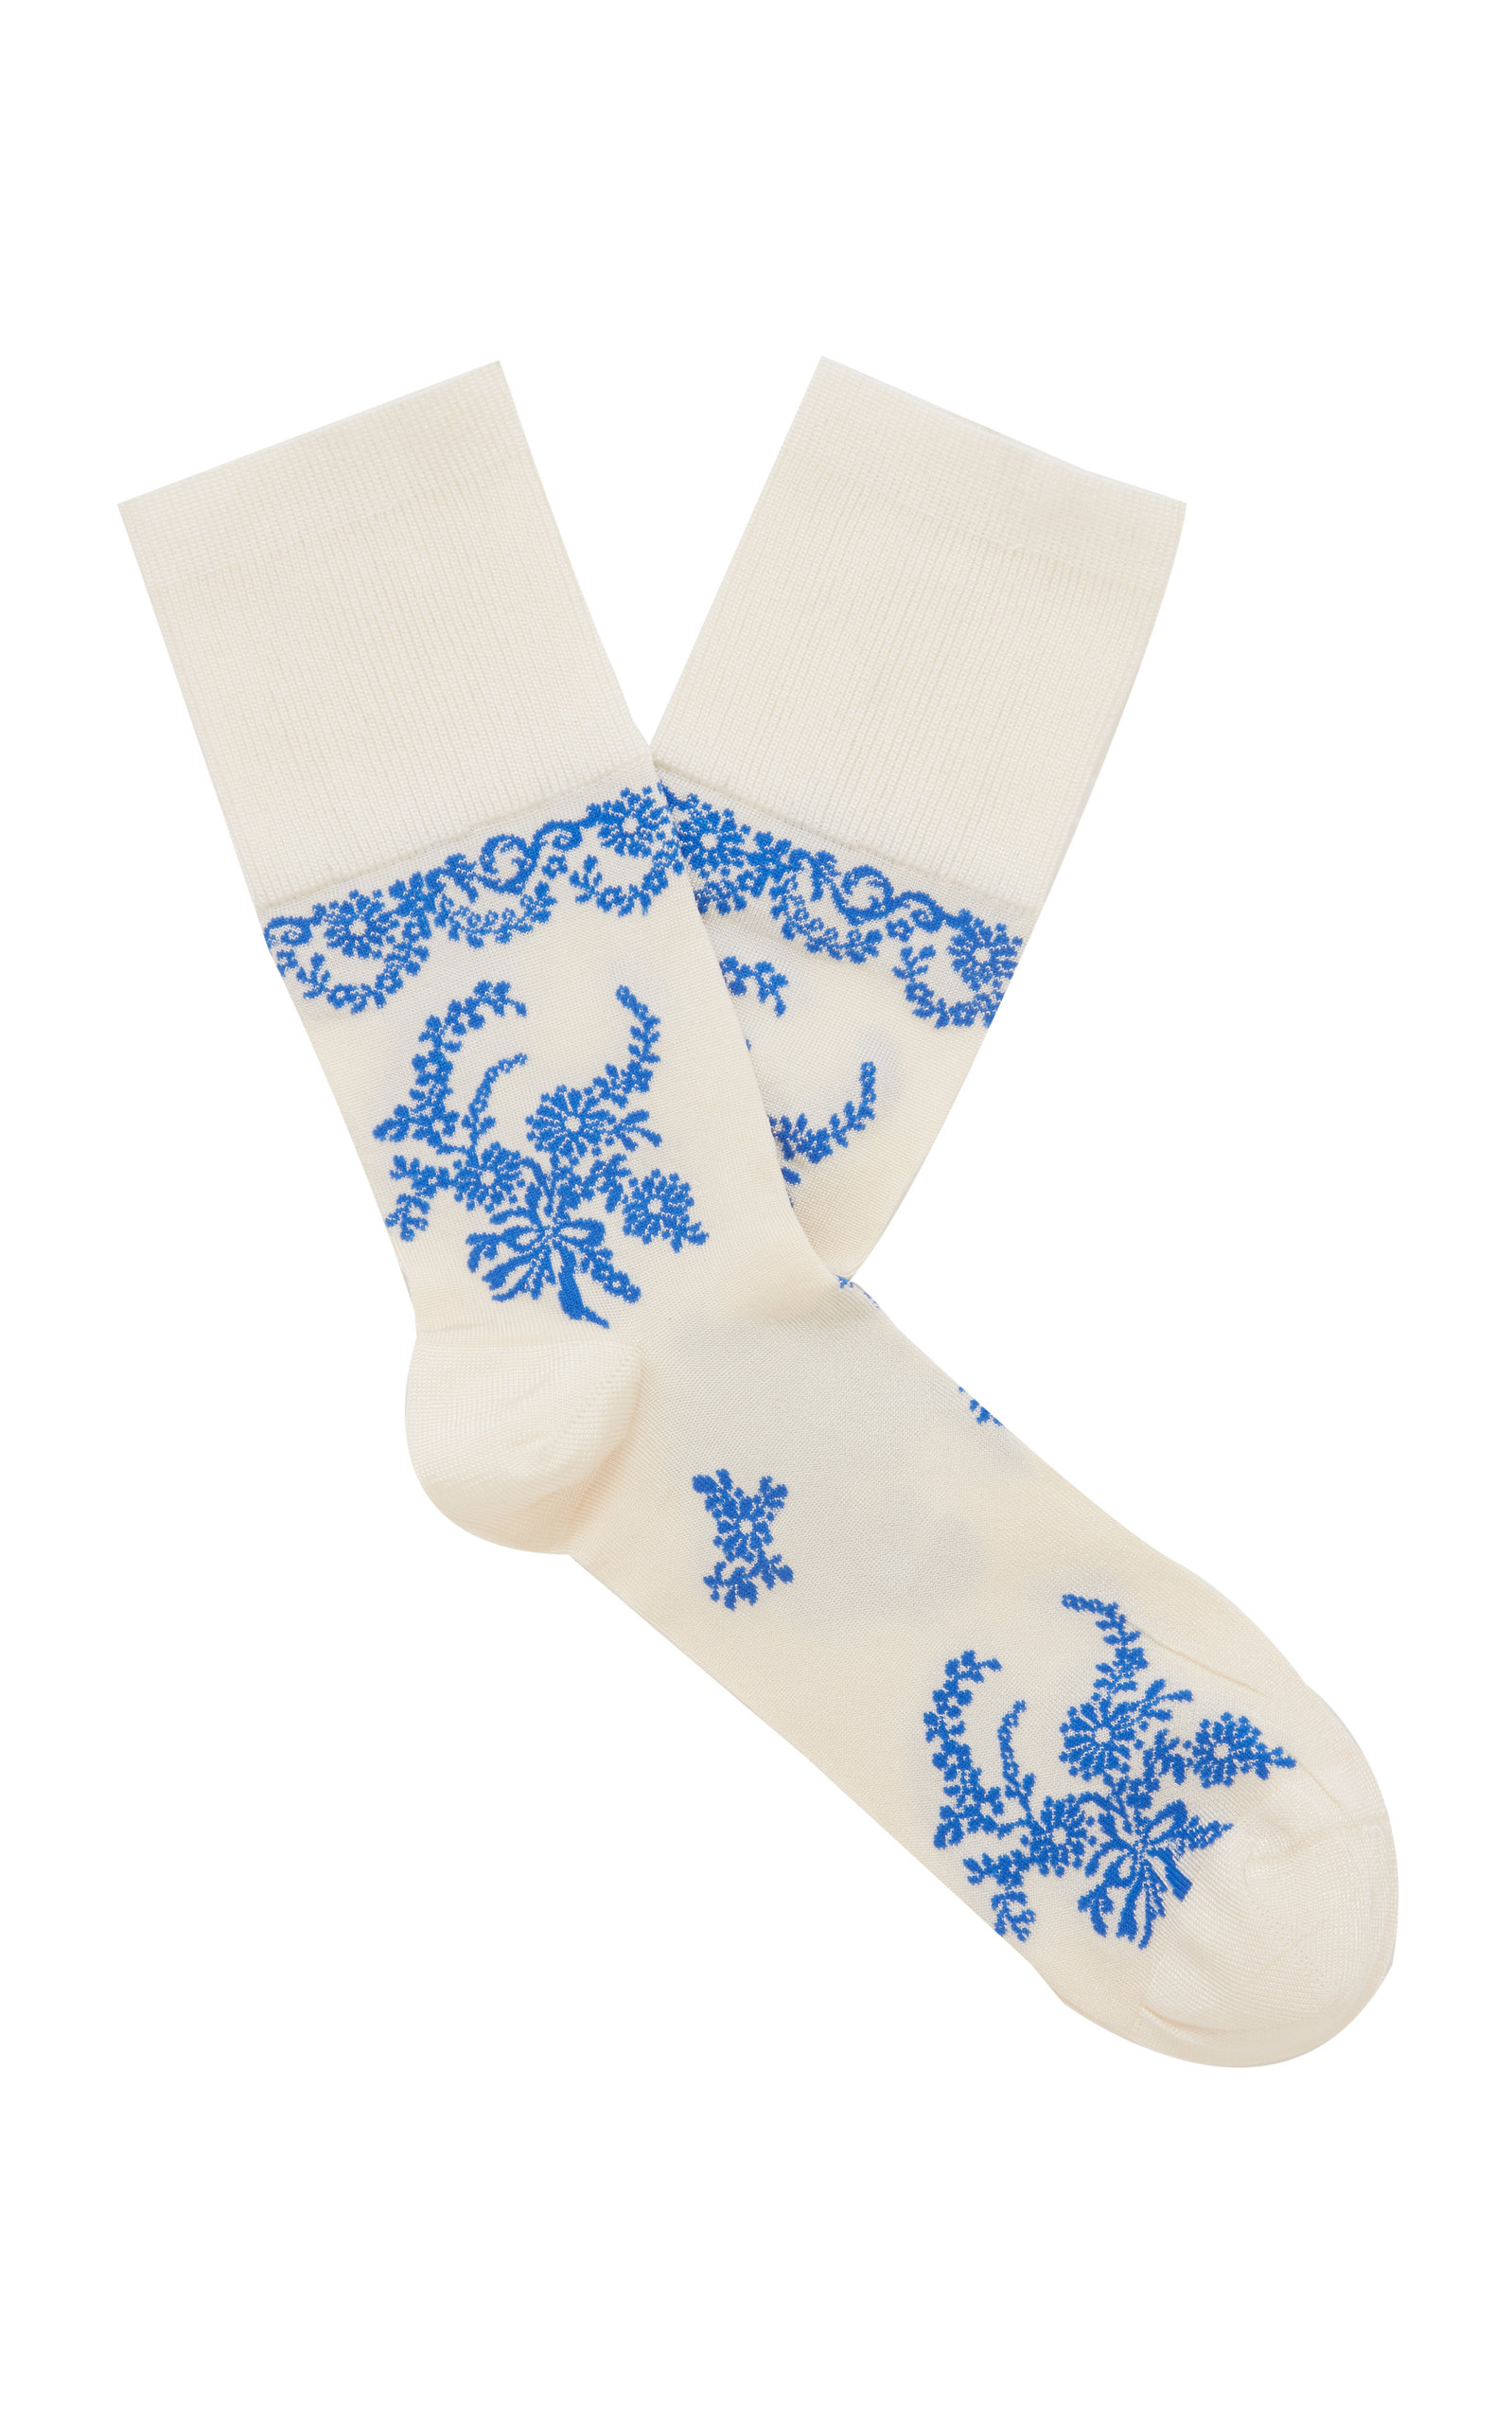 Simone Rocha Hosieries LACE-ACCENTED ANKLE SOCKS